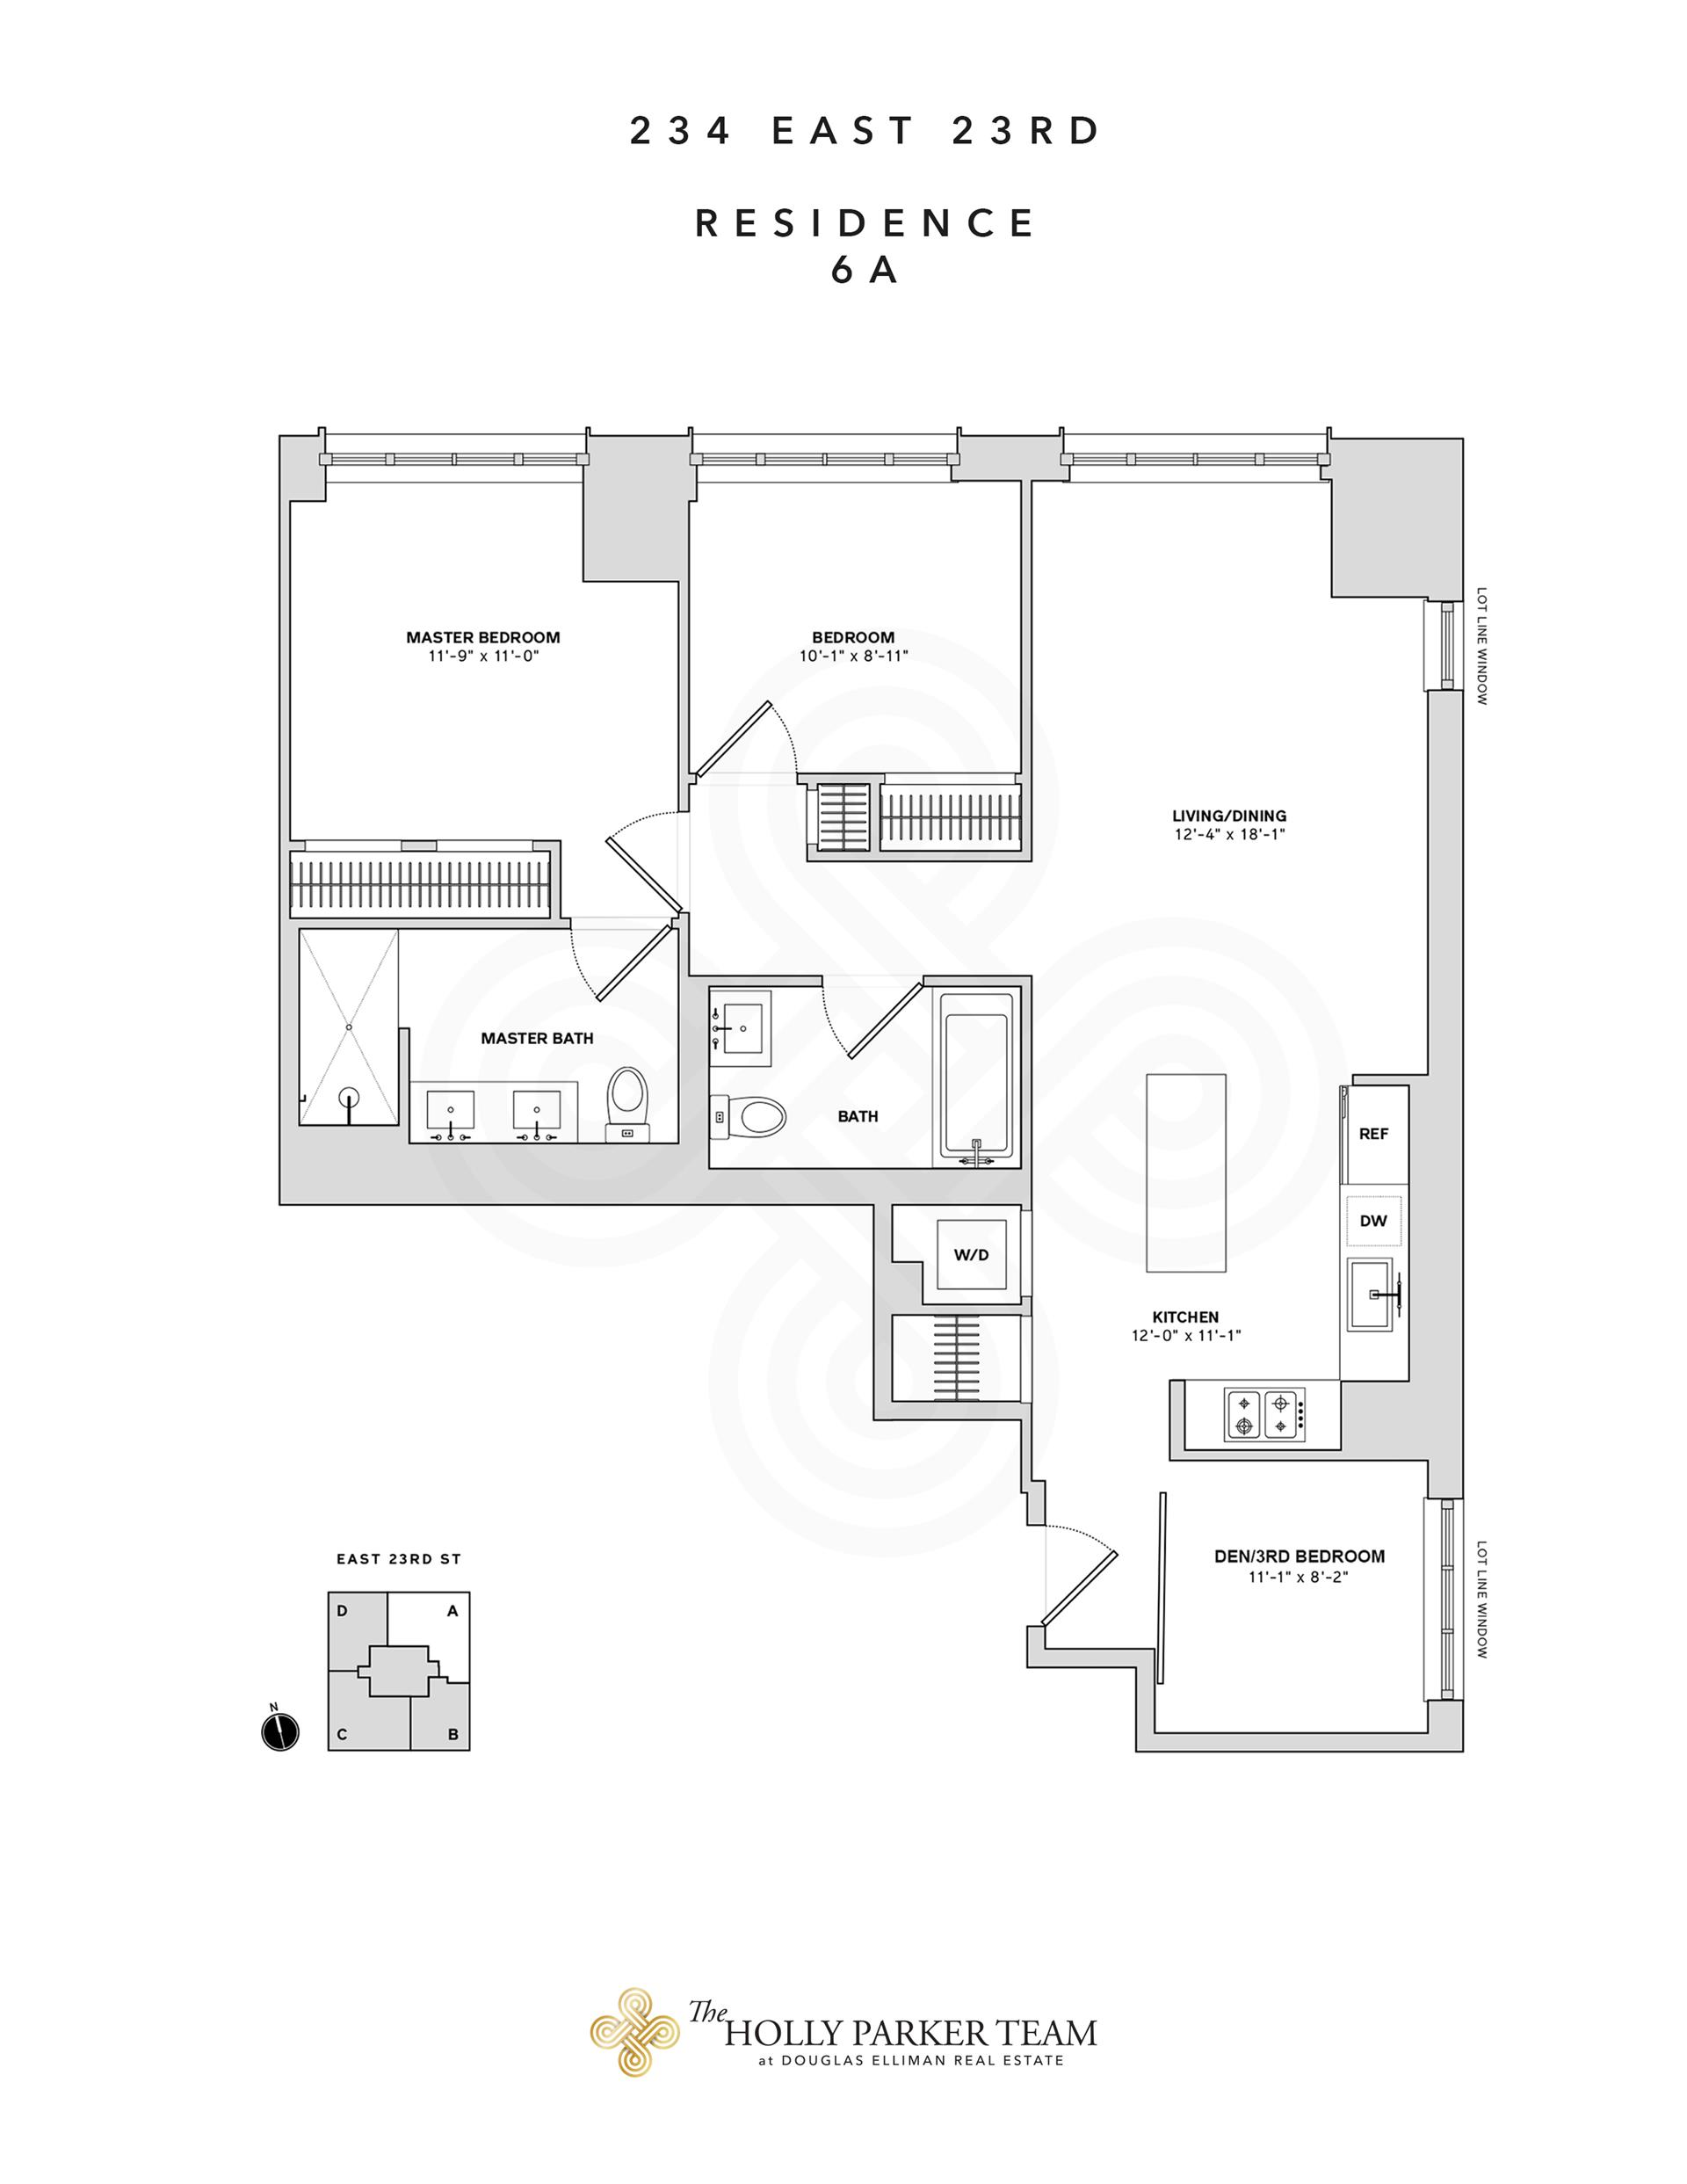 Floor plan of 234 East 23rd St, 6A - Gramercy - Union Square, New York